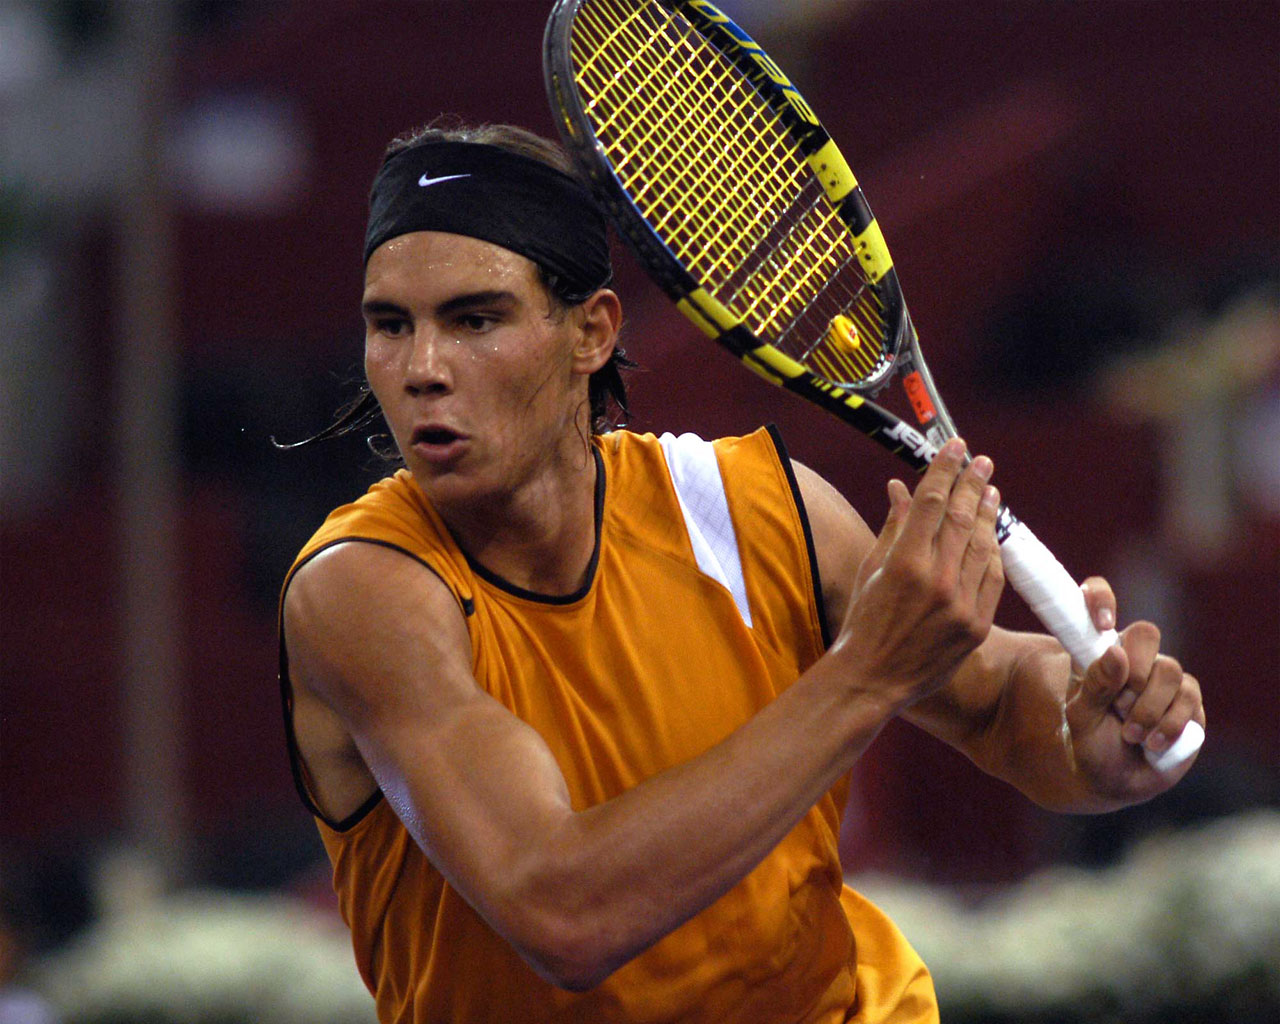 Sports and Players: Rafeal Nadal